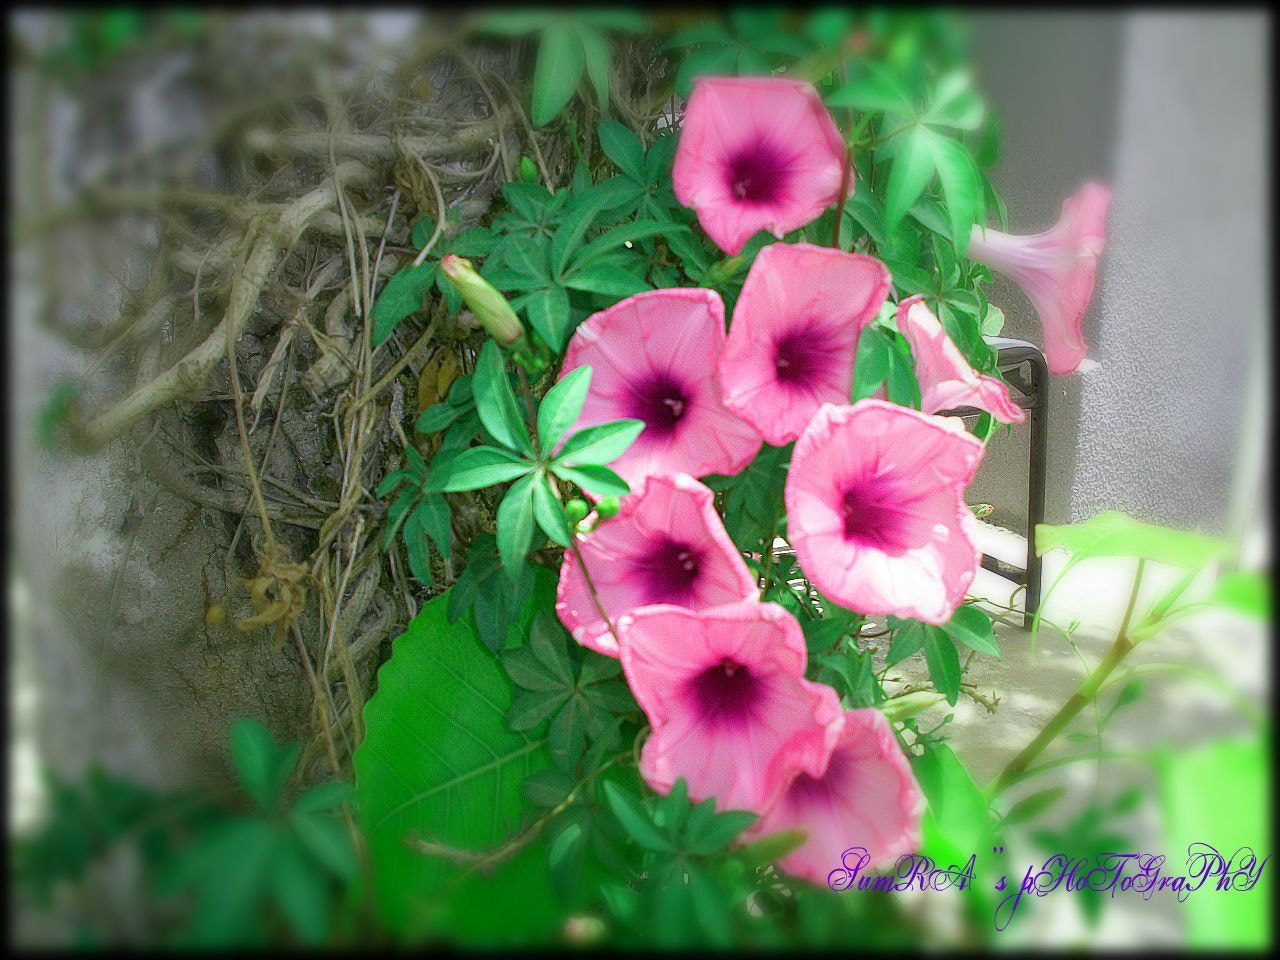 Photograph Flowers by Irum Sheikh on 500px